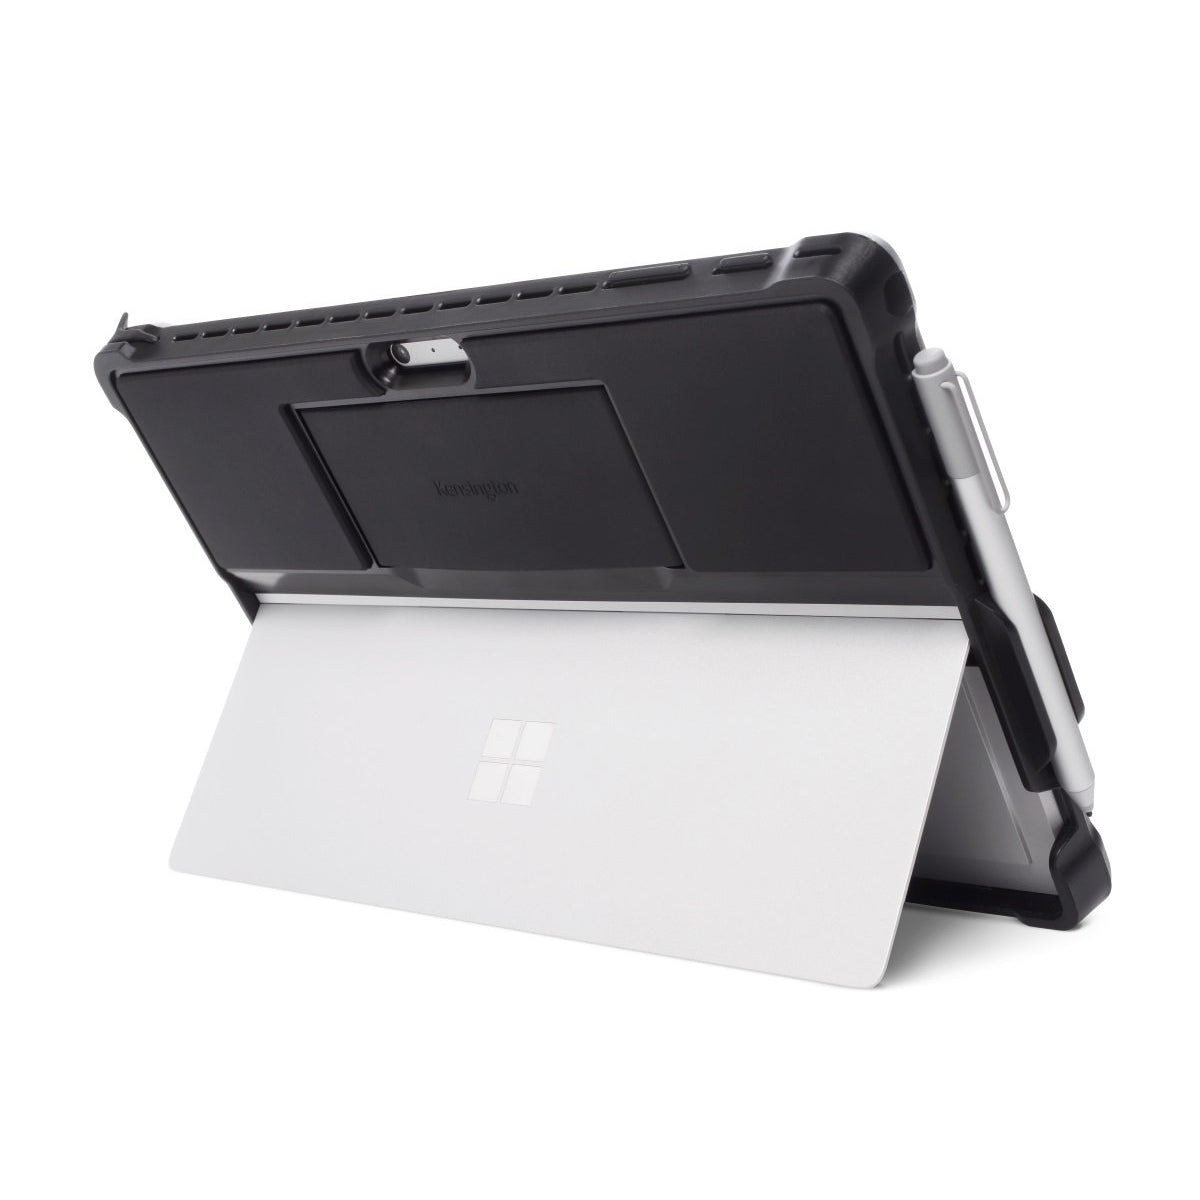 BlackBelt 2nd Degree Rugged Case for Surface Pro 4 and Pro (2017)